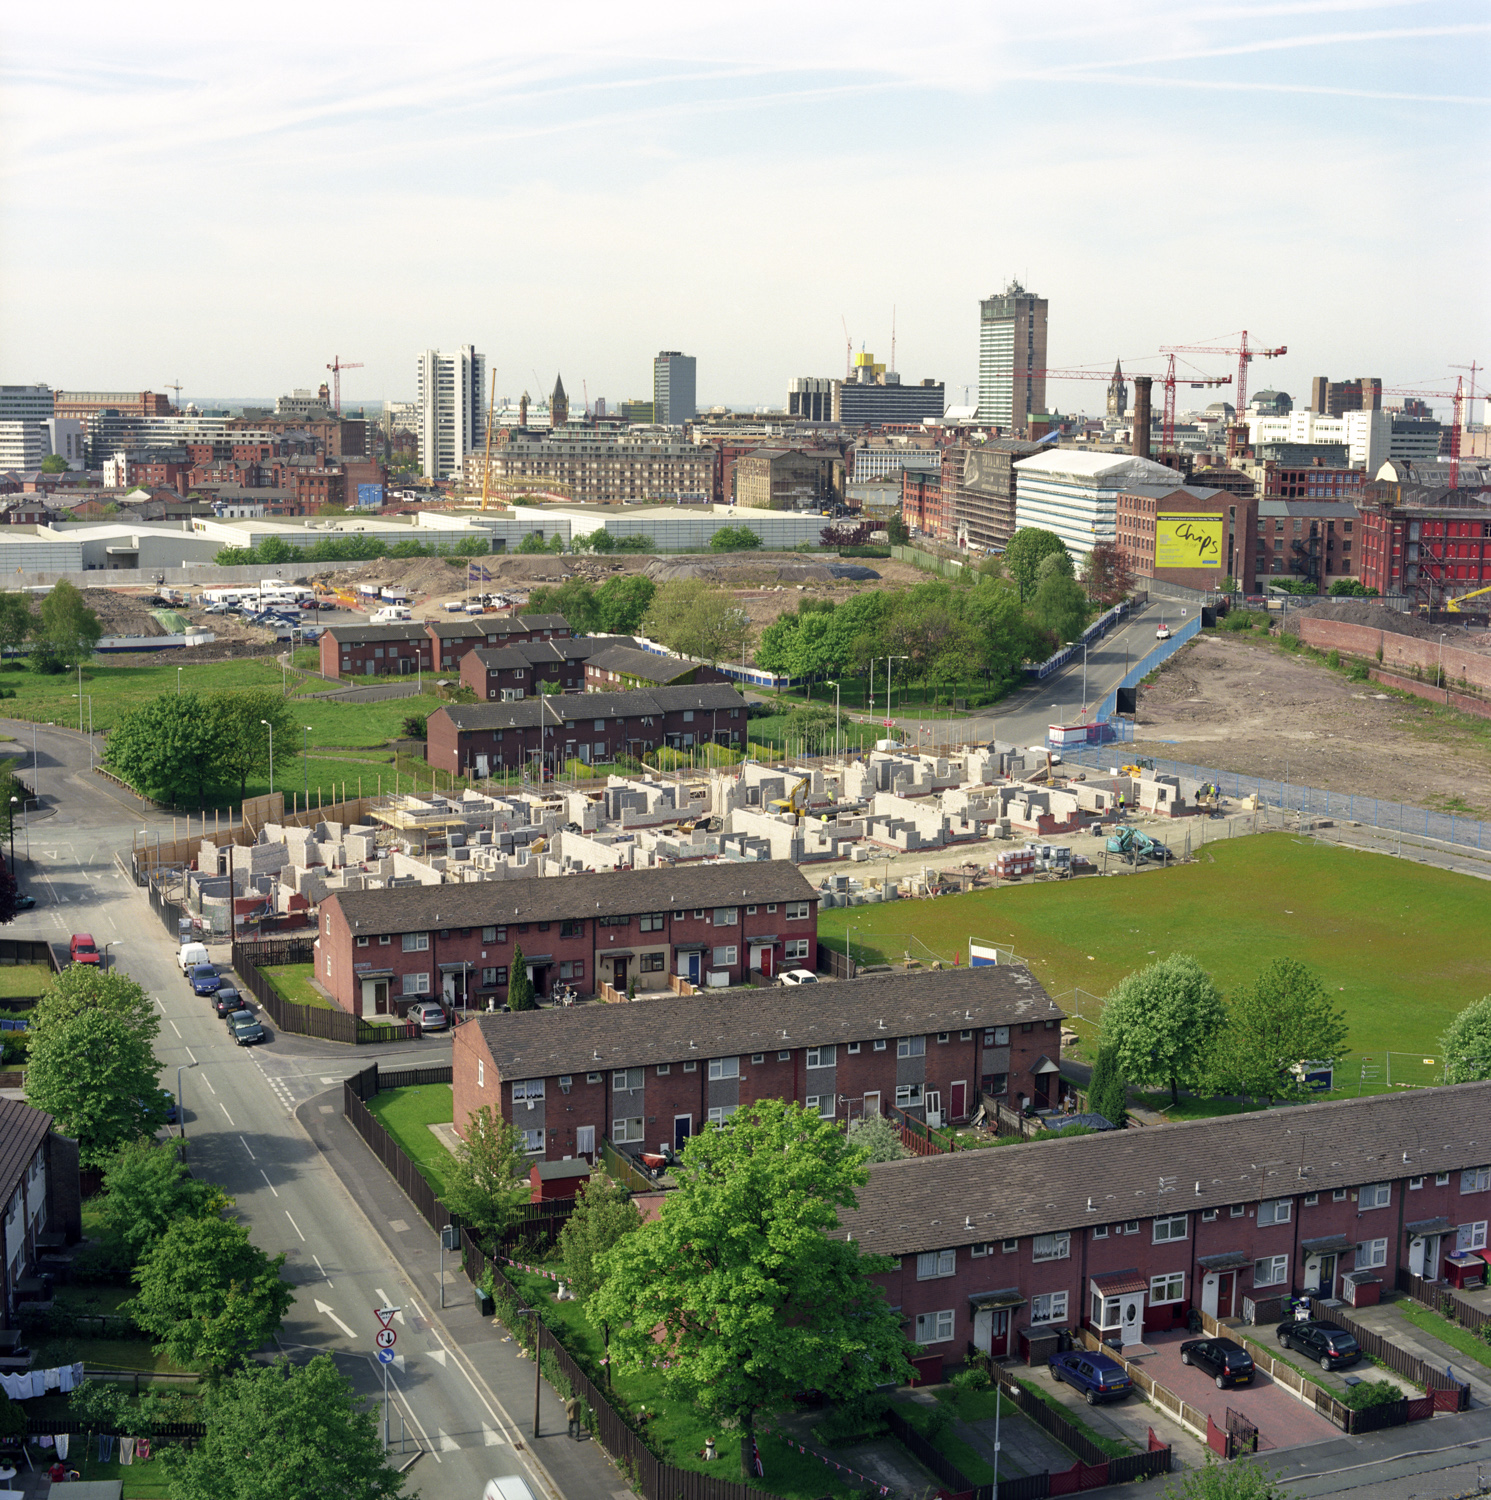 The incredible 30-year transformation of Manchester captured on camera, The Manc